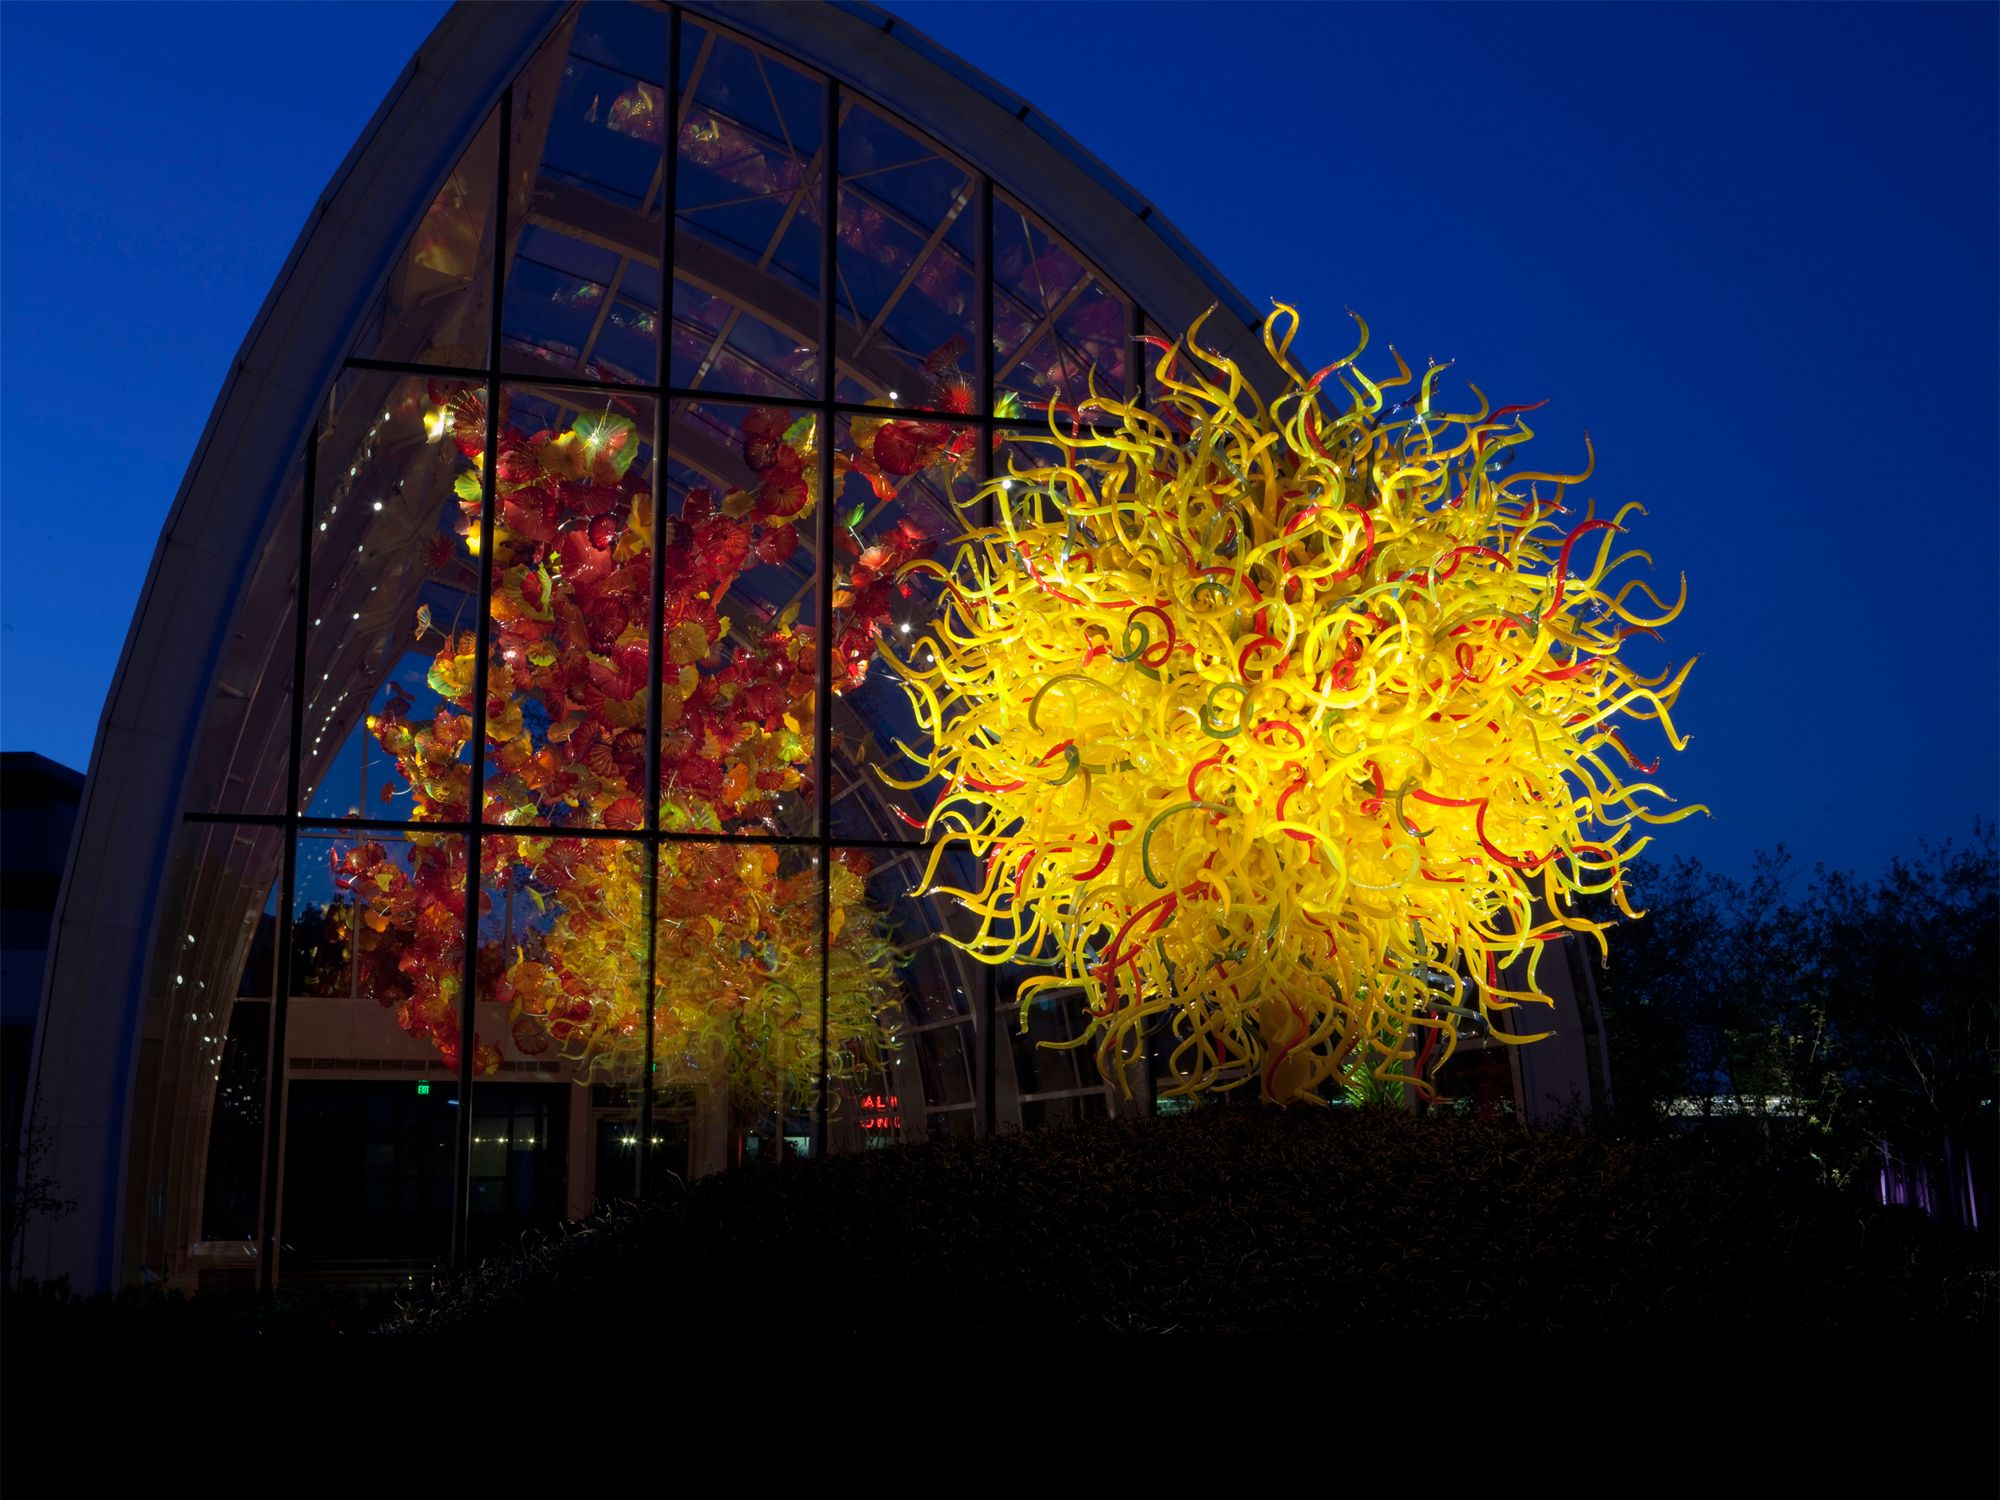 Chihuly Garden And Glass Museum View The Artwork Of Dale Chihuly In Seattle Seattle A